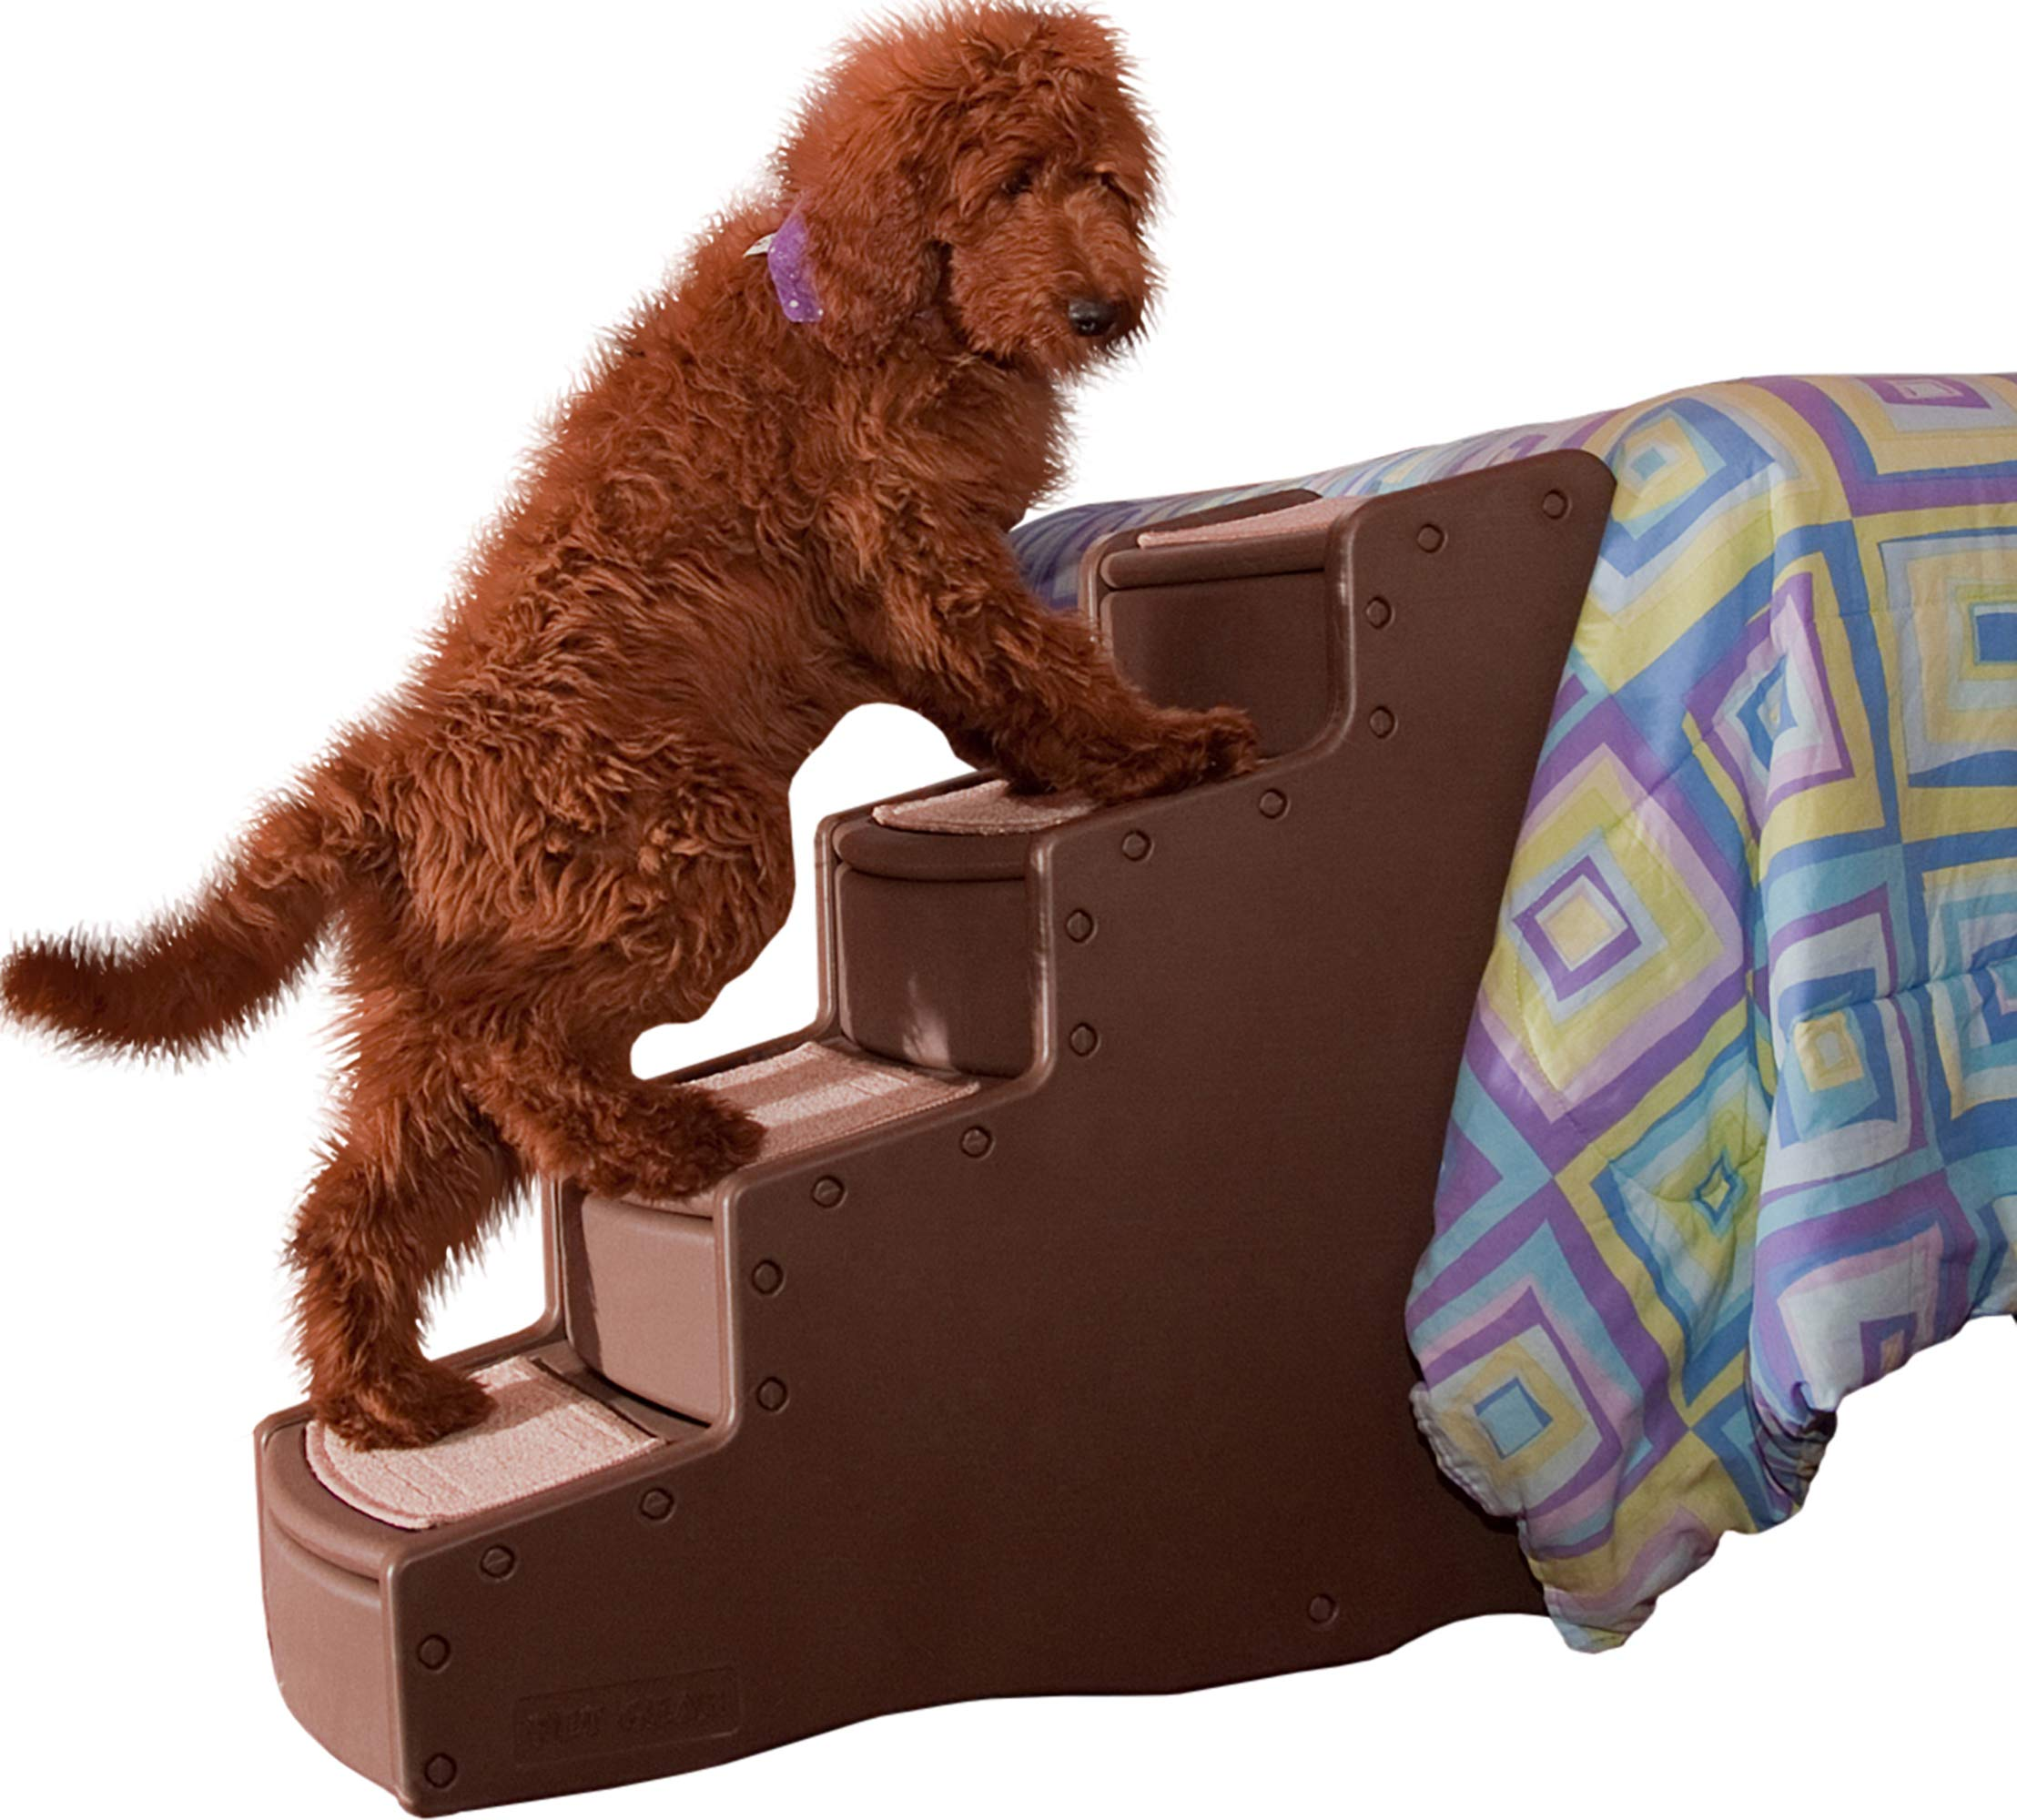 Pet Gear Easy Step IV Pet Stairs, 4-Step for Cats/Dogs, Portable/Lightweight, Sturdy by Pet Gear